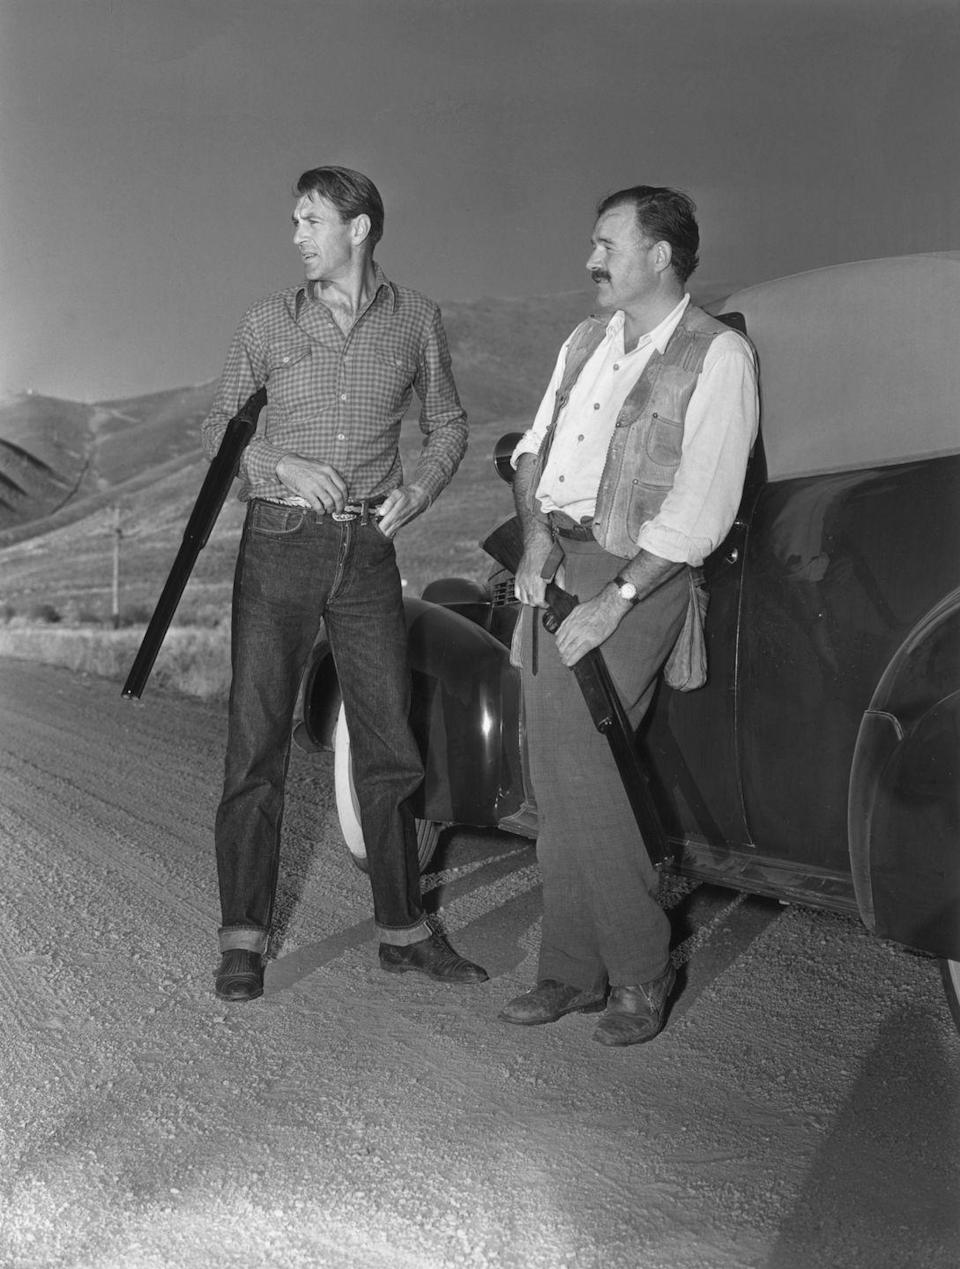 """<p>Gary Cooper and Hemingway were one of Hollywood's greatest bromances back in the day. After <a href=""""https://www.nytimes.com/2013/10/11/movies/cooper-hemingway-an-alliance-of-actor-and-writer.html"""" rel=""""nofollow noopener"""" target=""""_blank"""" data-ylk=""""slk:meeting on the set"""" class=""""link rapid-noclick-resp"""">meeting on the set</a> of the film adaptation of Hemingway's <em><a href=""""https://www.amazon.com/Farewell-Arms-Ernest-Hemingway/dp/0684801469?tag=syn-yahoo-20&ascsubtag=%5Bartid%7C10067.g.36892485%5Bsrc%7Cyahoo-us"""" rel=""""nofollow noopener"""" target=""""_blank"""" data-ylk=""""slk:A Farewell to Arms"""" class=""""link rapid-noclick-resp"""">A Farewell to Arms</a> </em>in 1932, which Cooper starred in, they became good friends. Here, they take a break from pheasant shooting at Cooper's ranch in Sun Valley, Idaho. </p>"""